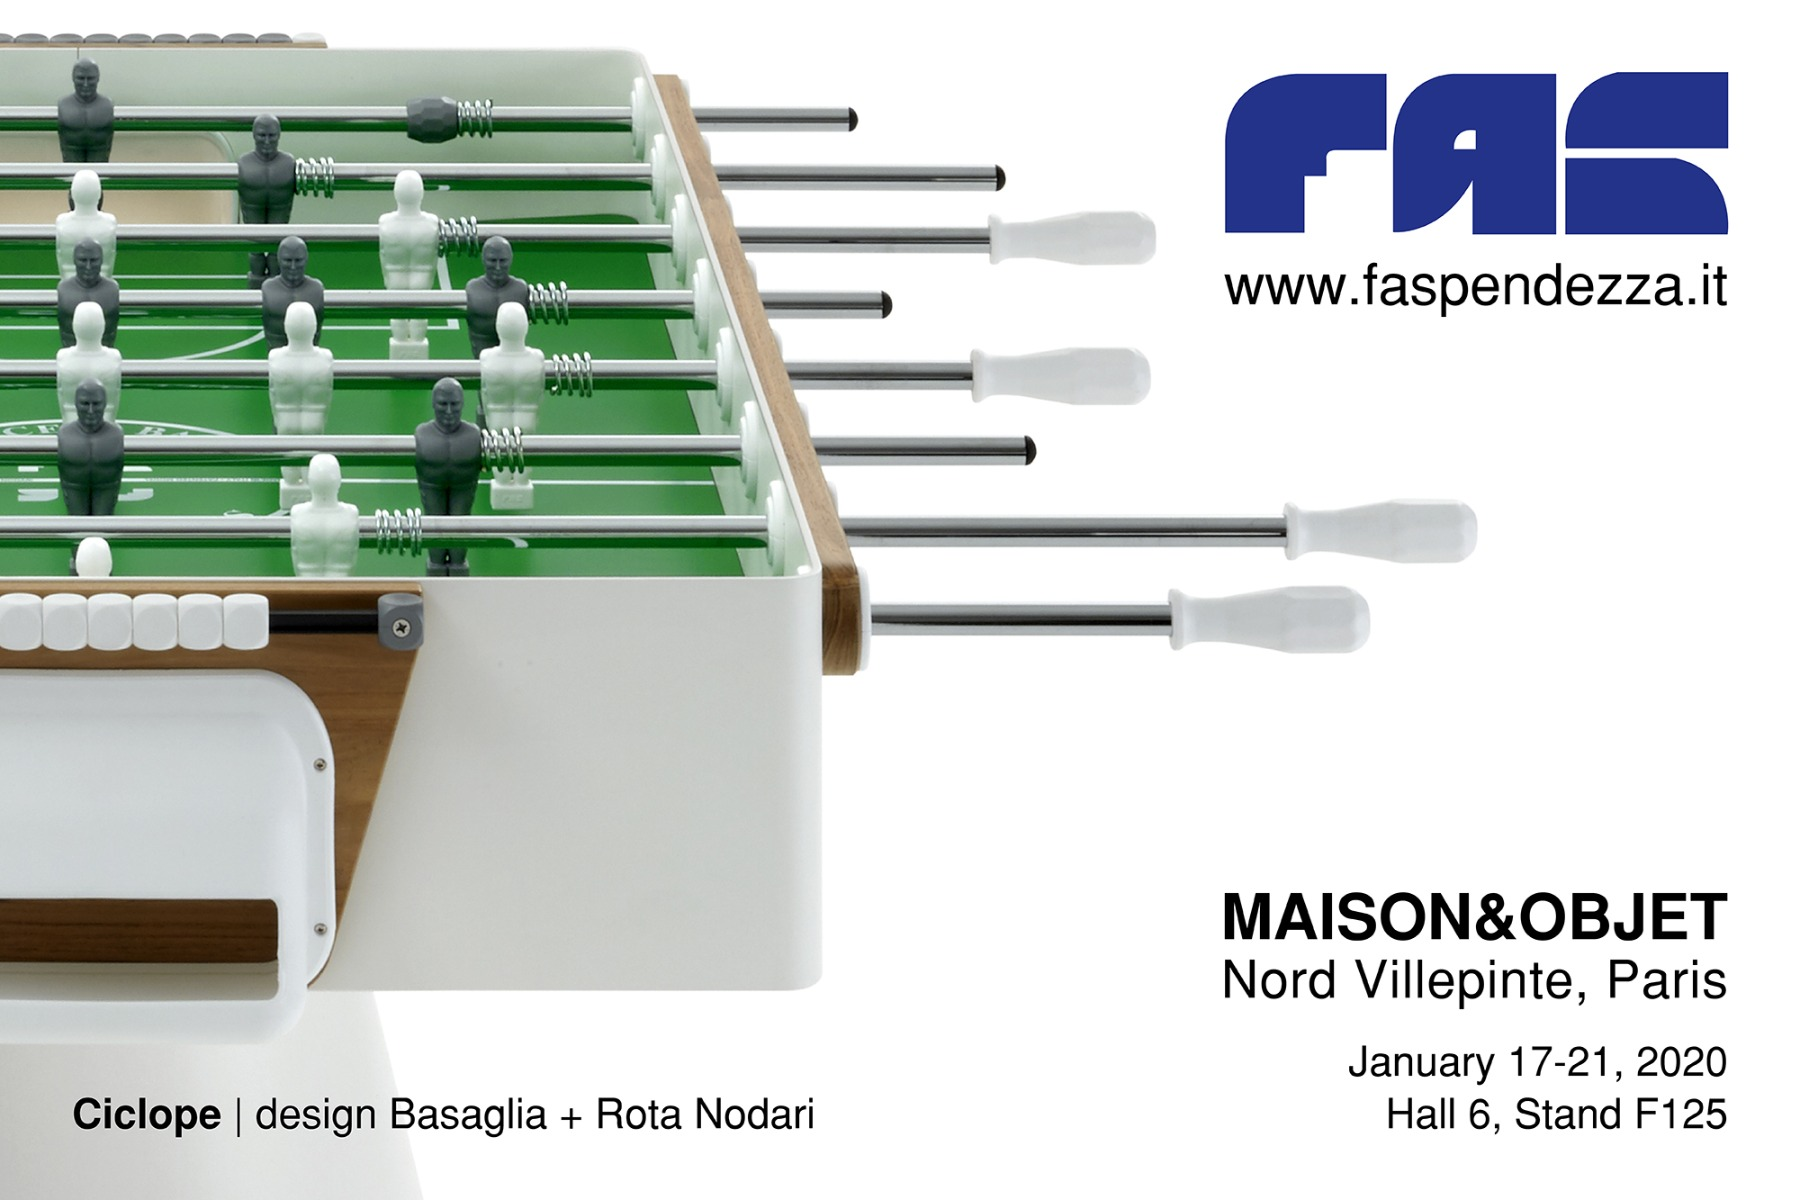 SAVE THE DATE: FAS Pendezza @ Maison&Objet 2020